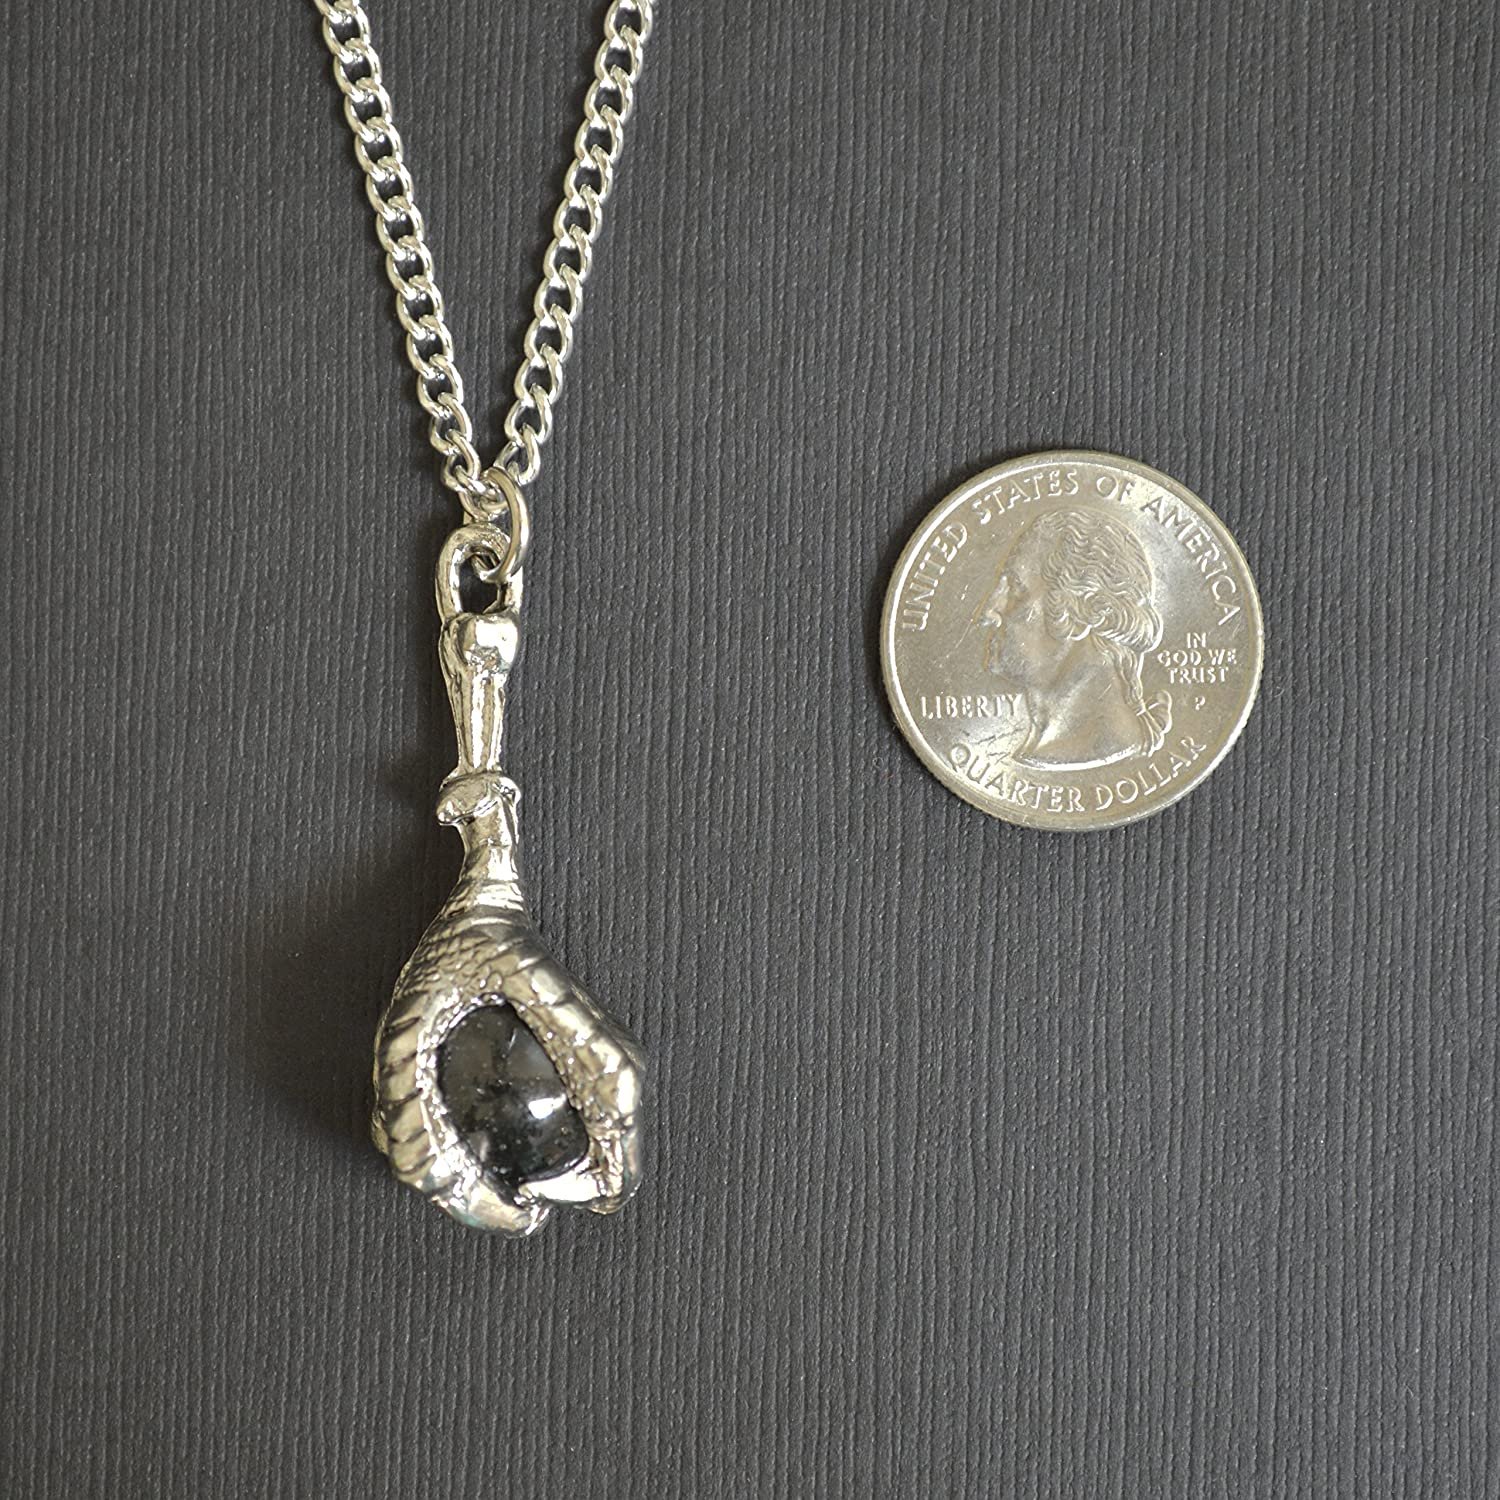 silver and image chain eternity pendant jewellery crystal ball sterling